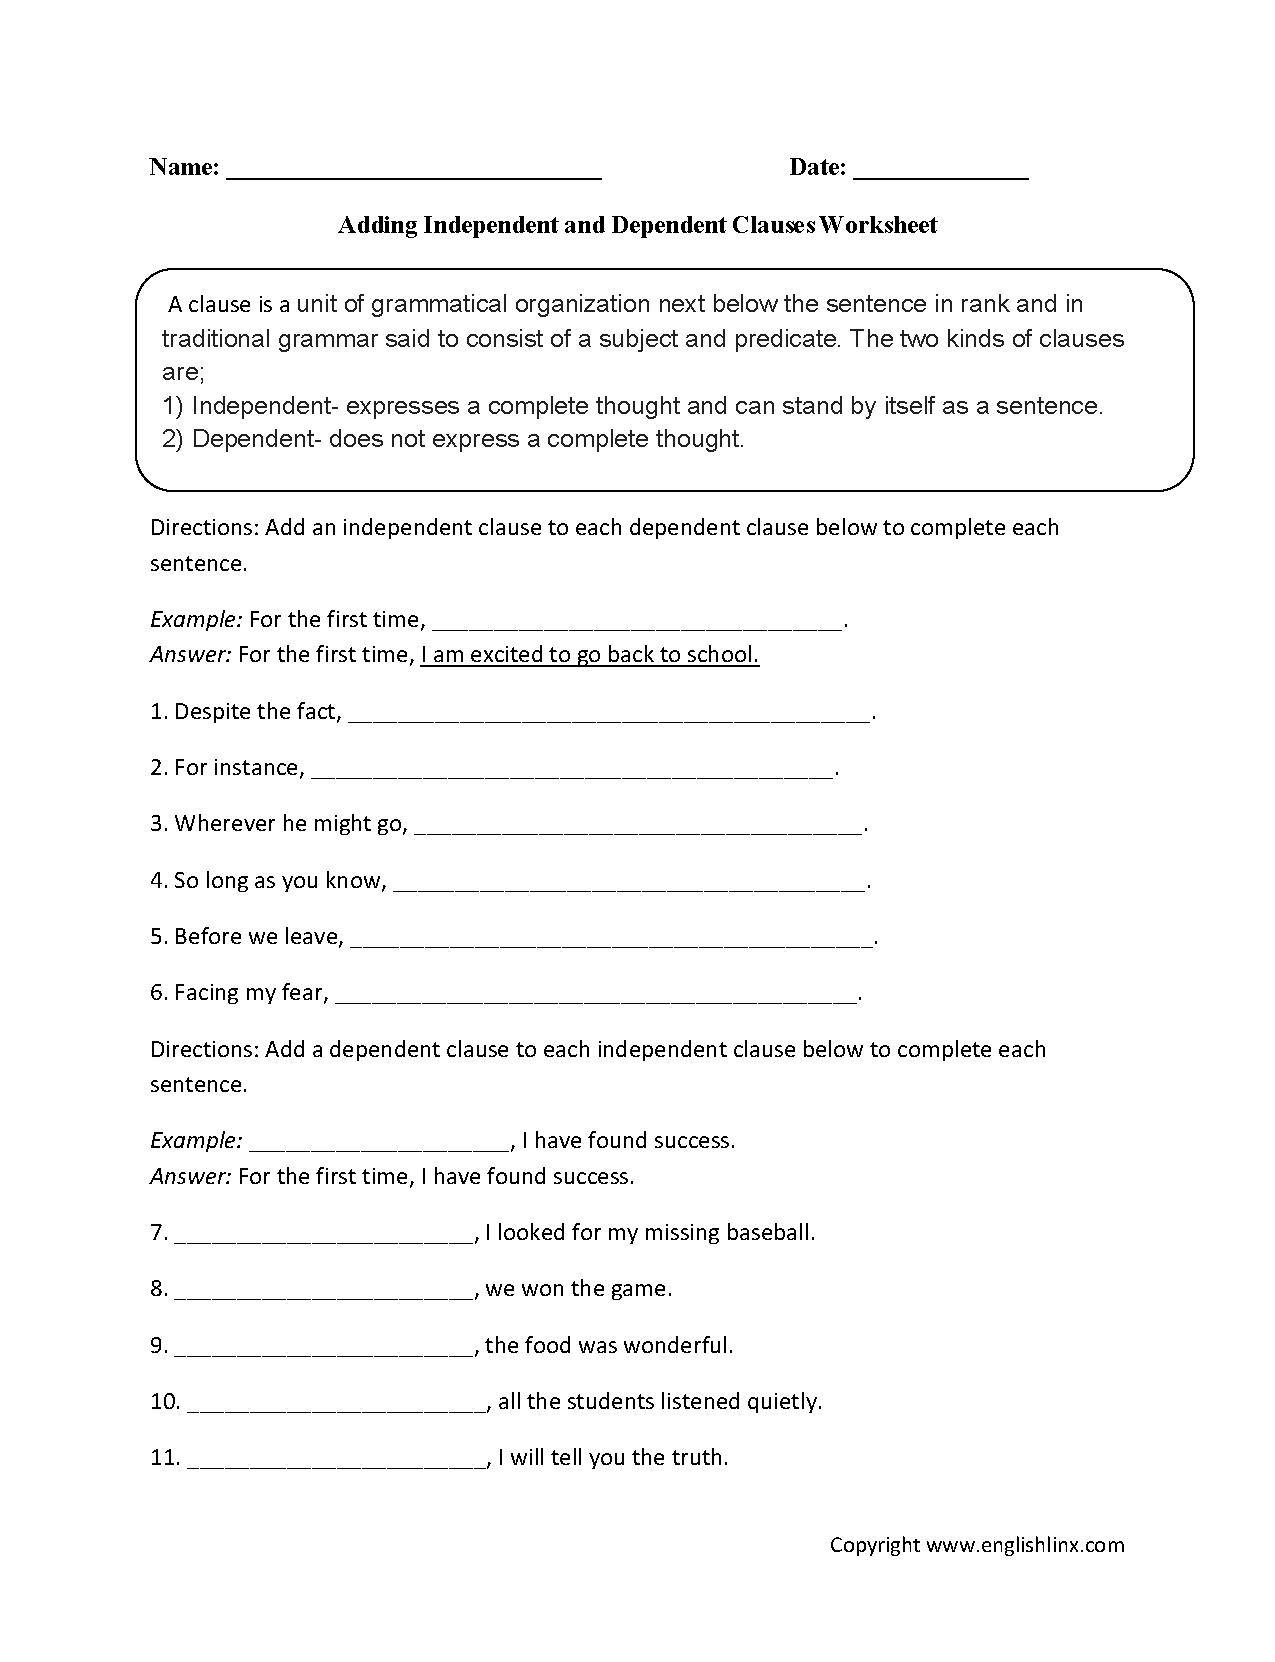 Adding Dependent and Independent Clauses Worksheet – Noun Clauses Worksheet